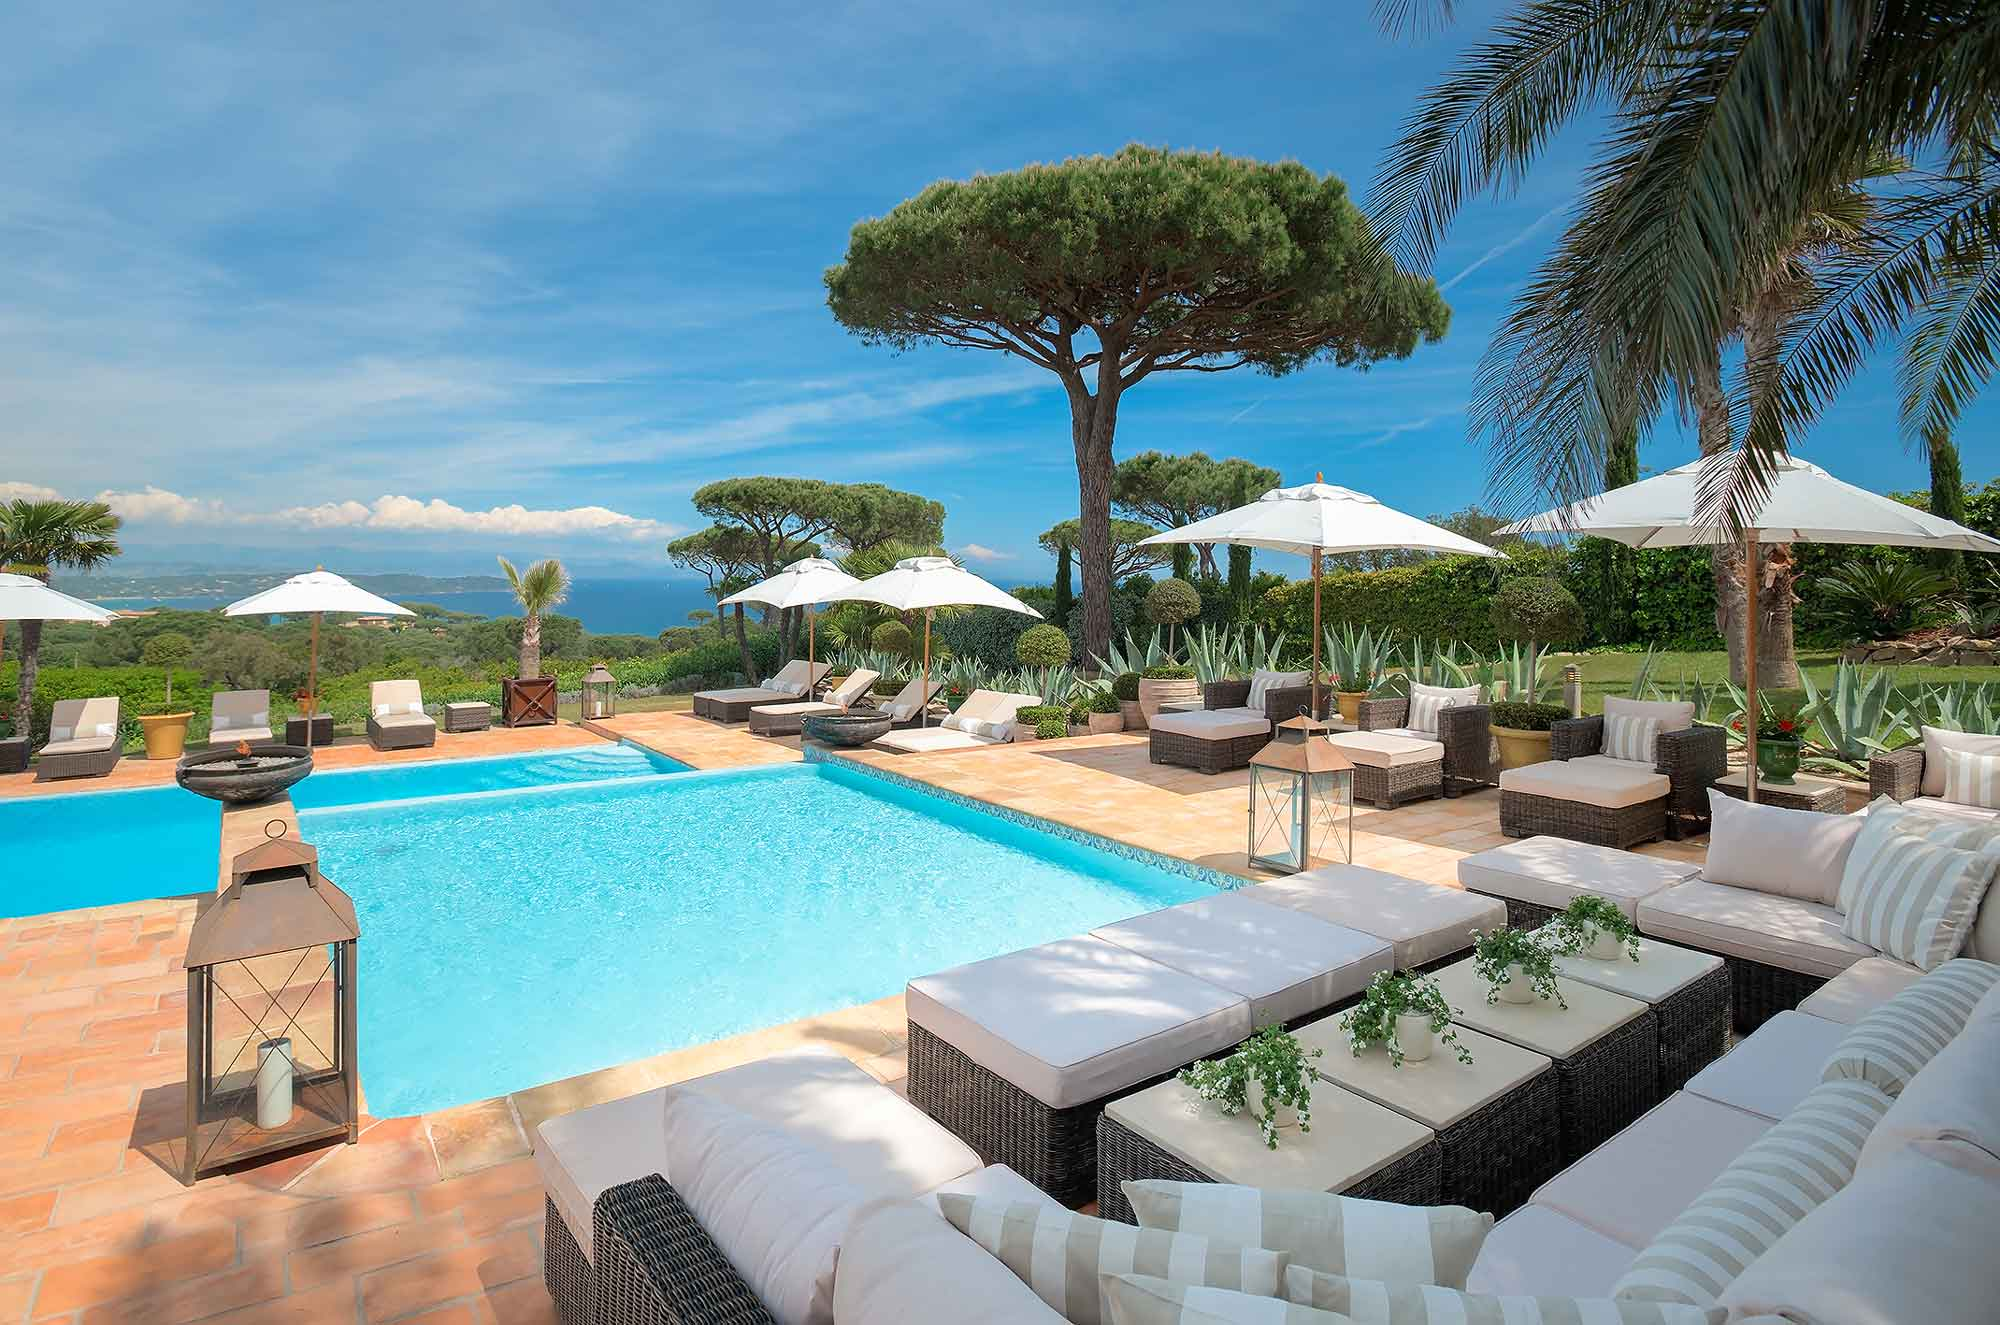 Villa Salmanazar rests amid privacy and seclusion in the hills of Ramatuelle, with views over the famous bay of Pampelonne, Saint-Tropez, and the surrounding Provençal countryside.